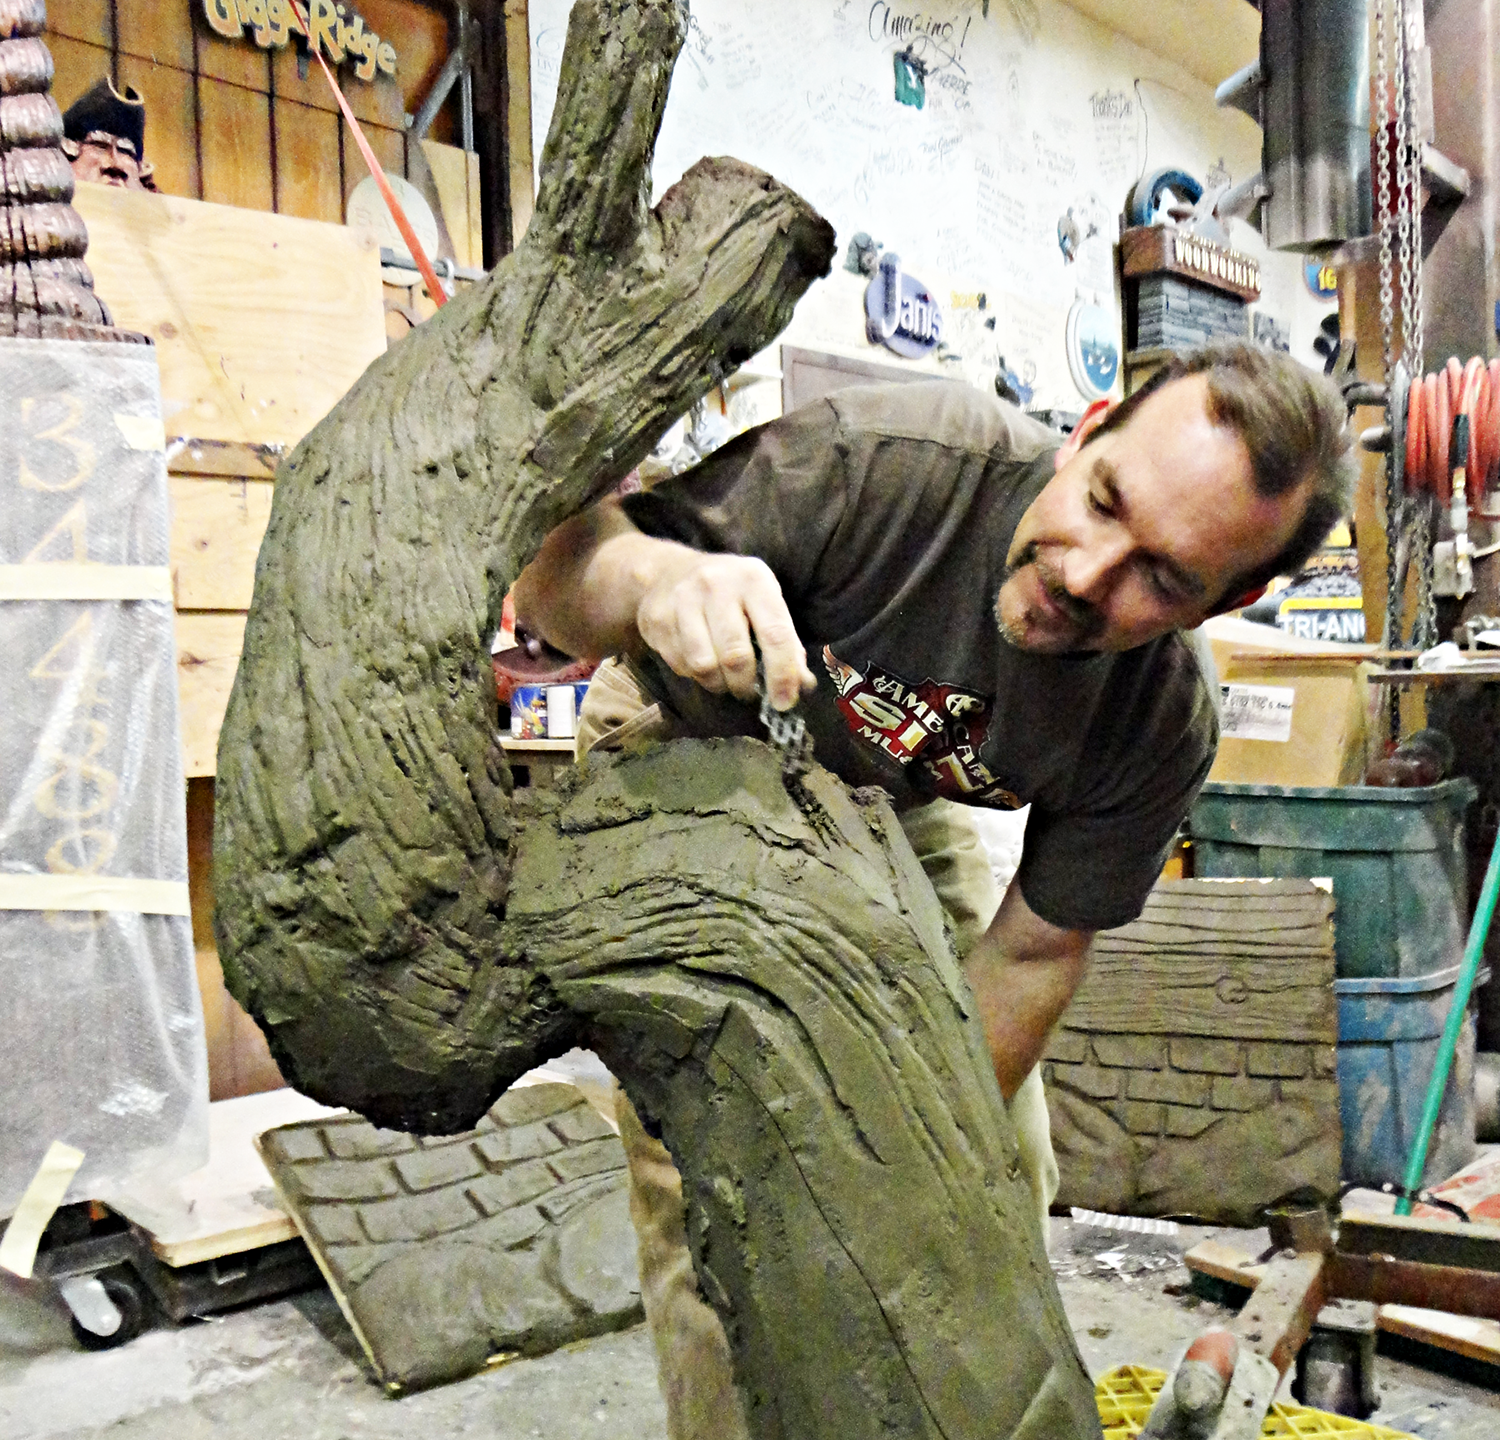 Kurt Stoner from Stoner Graphics carves a concrete tree.